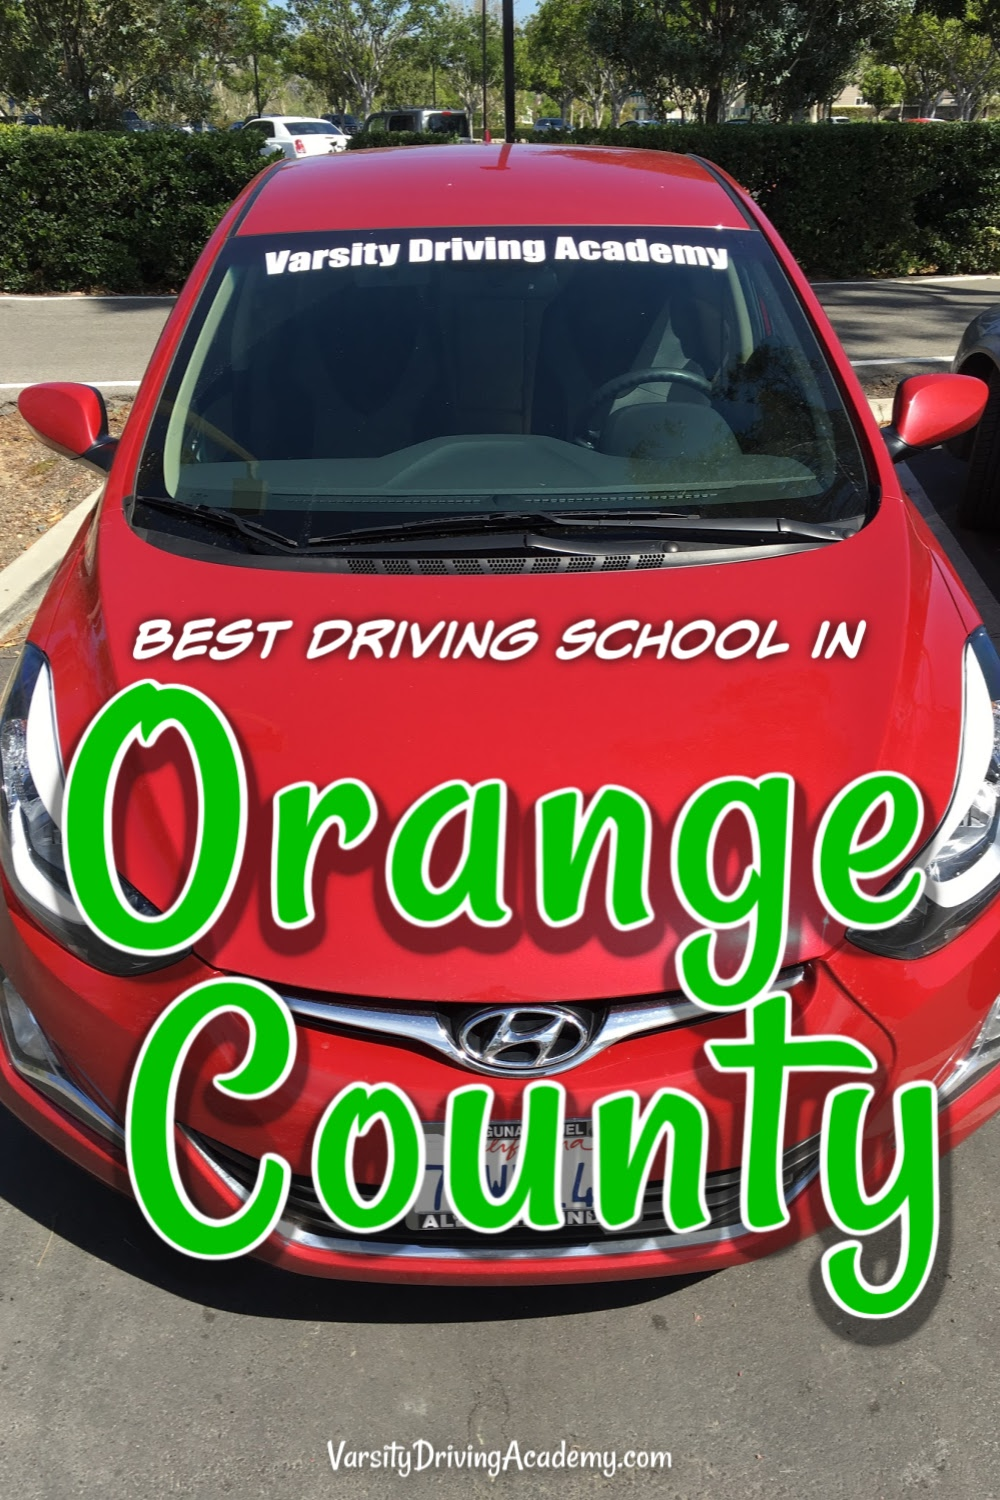 Welcome to Varsity Driving Academy, the best Orange County driving school for teens and adults to get defensive drivers ed in Orange County.